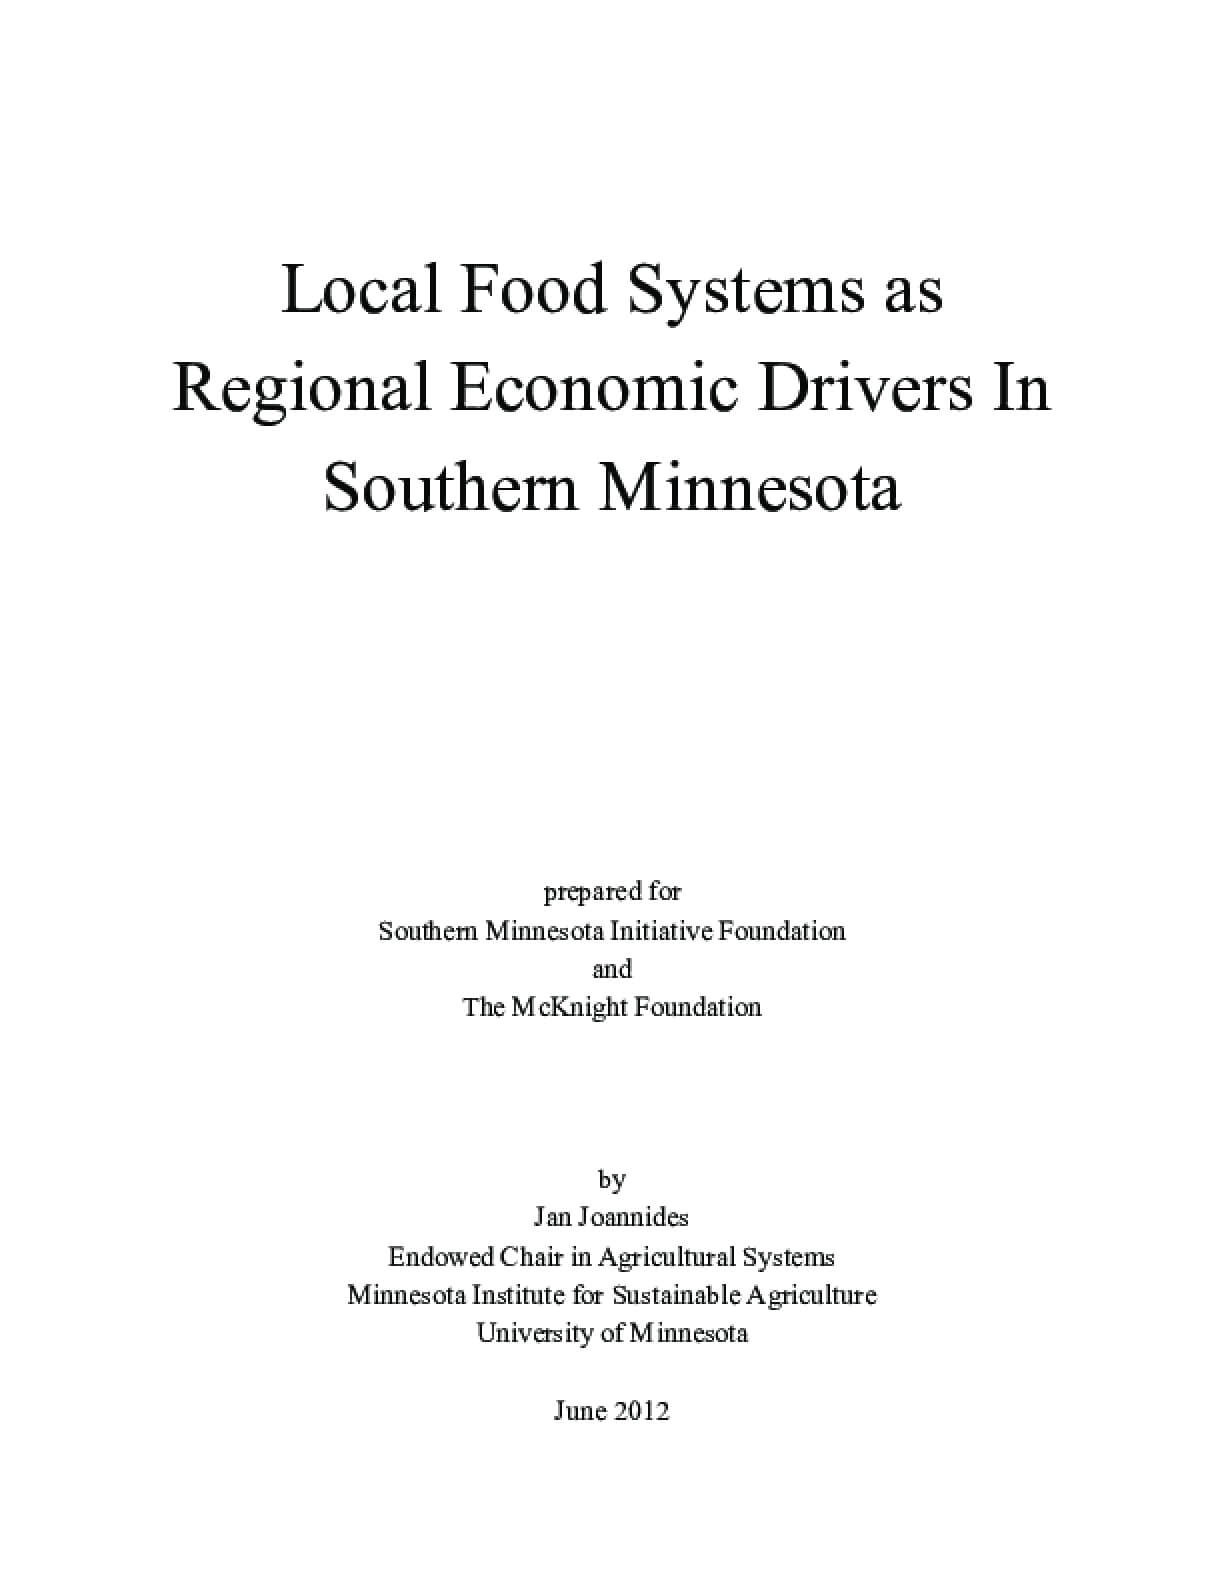 Local Food Systems as Regional Economic Drivers In Southern Minnesota